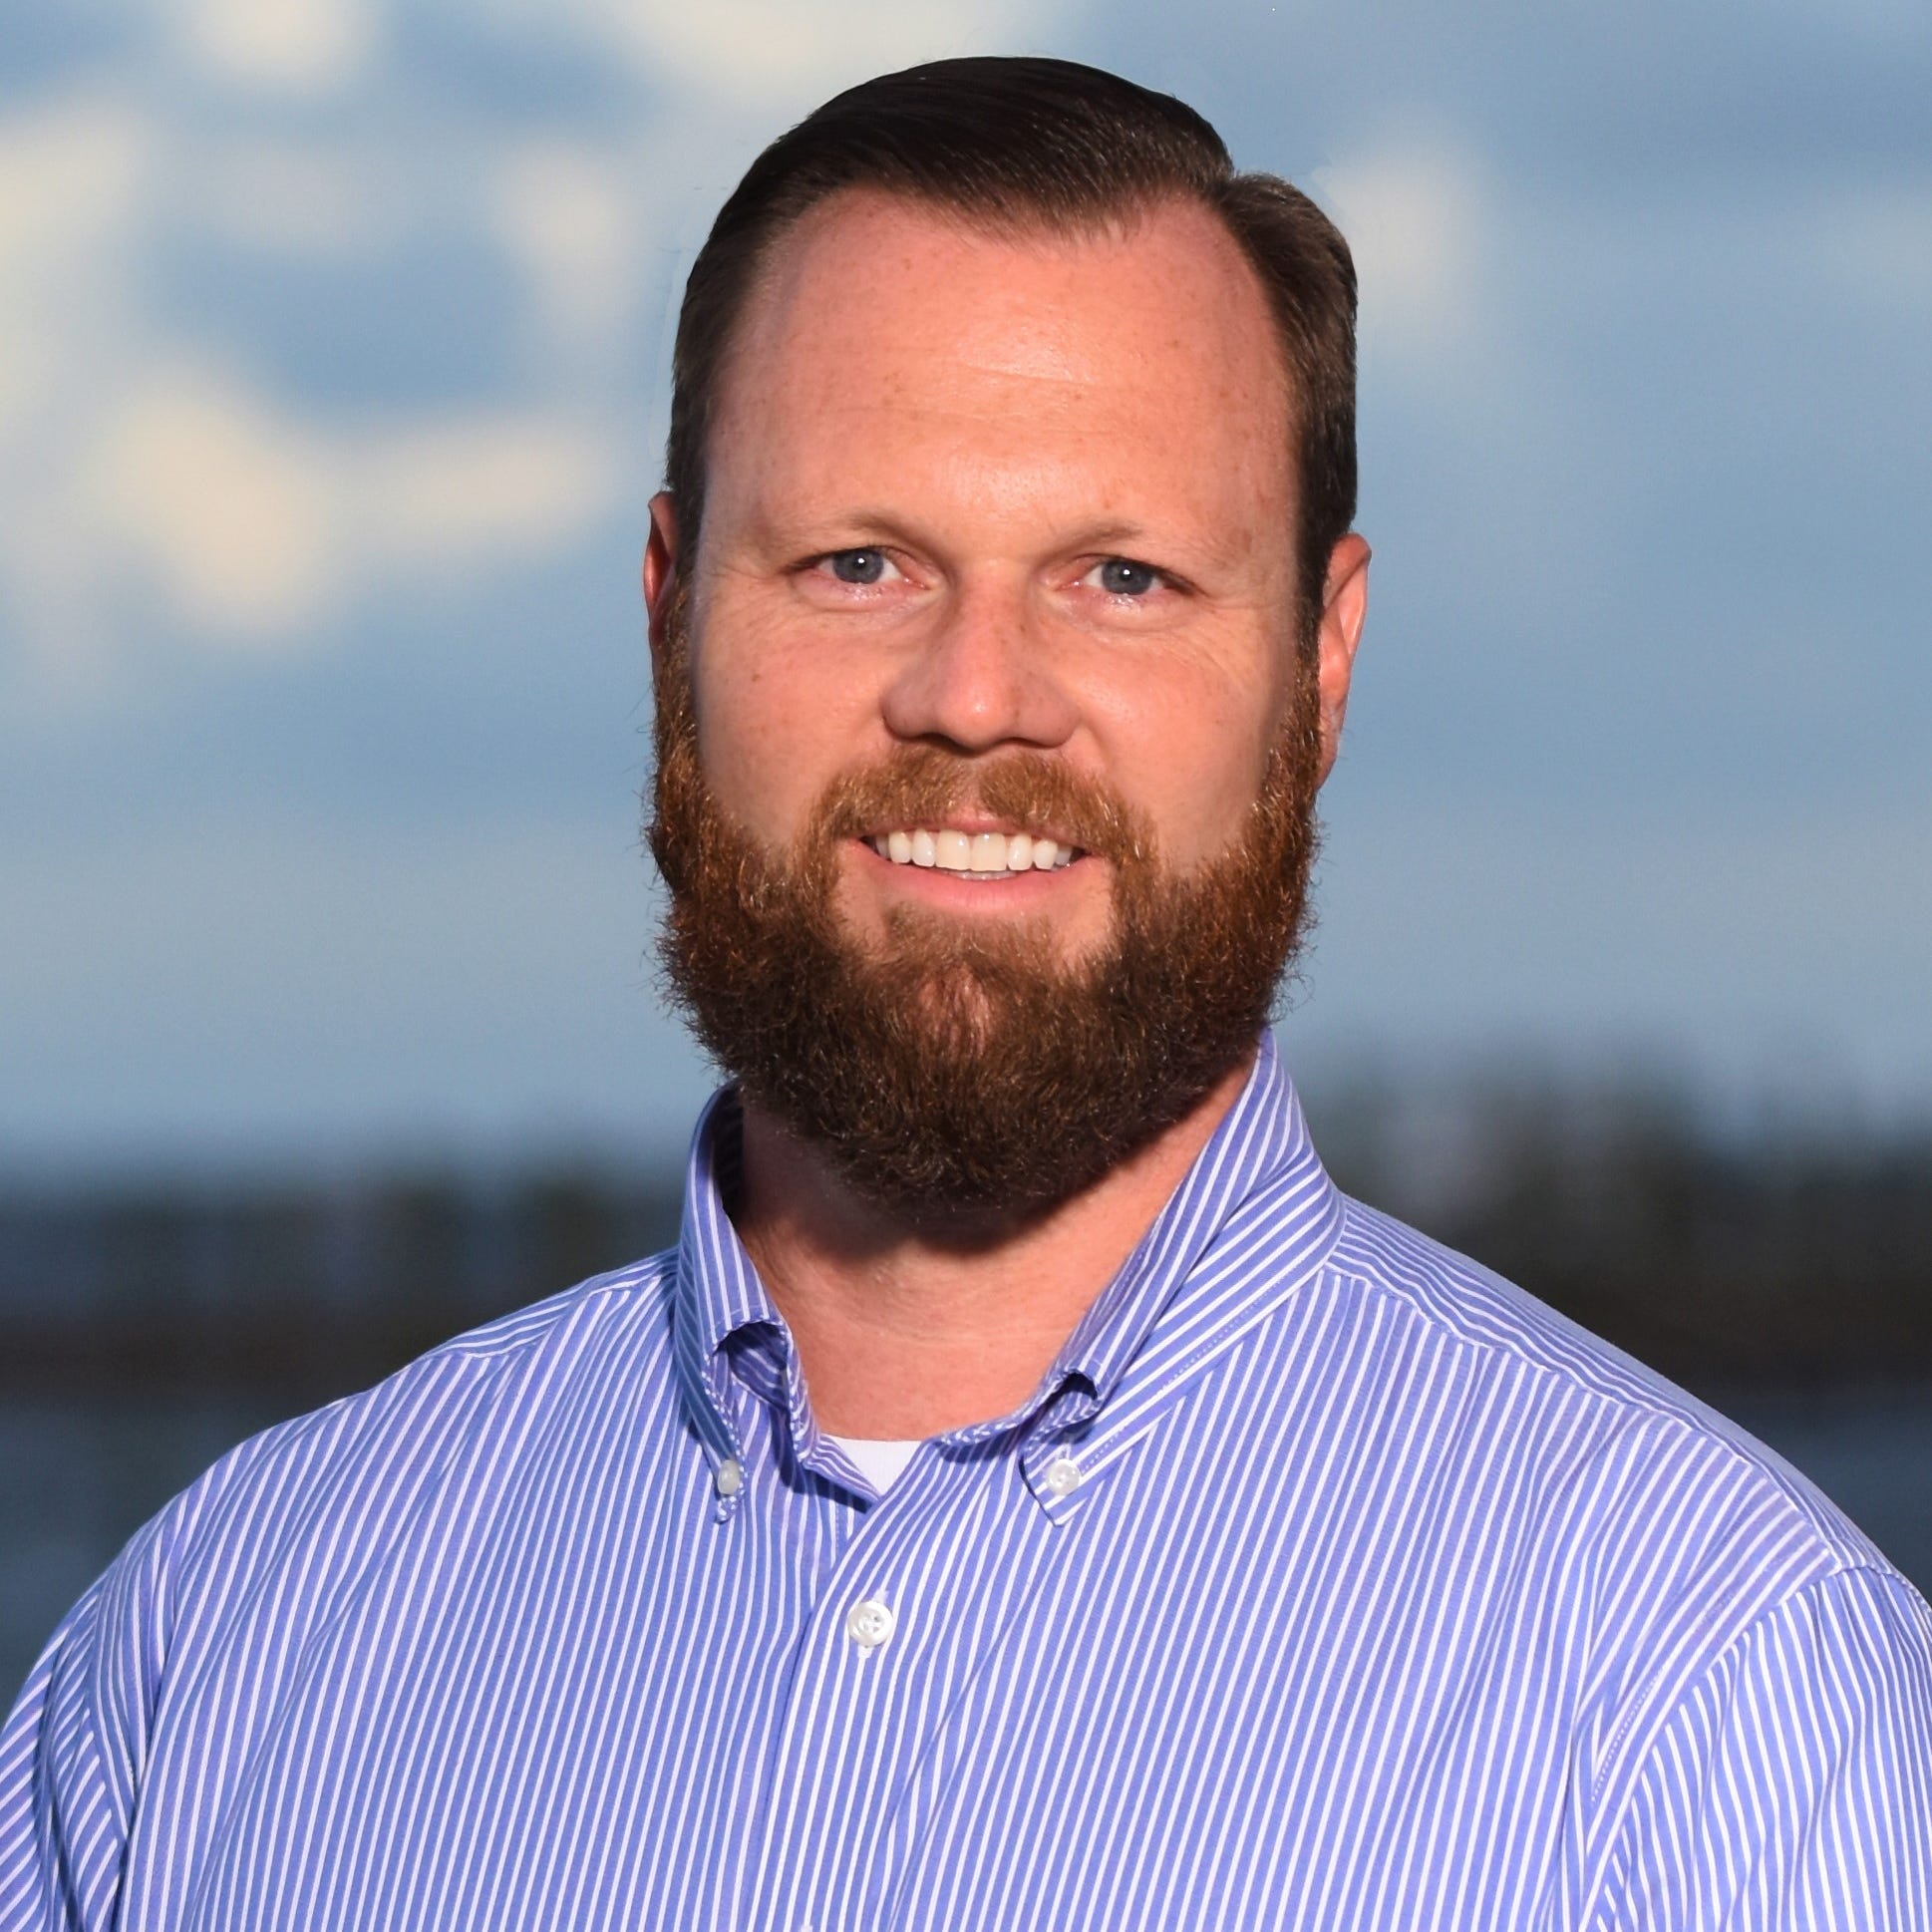 Matt Theobald our choice to chart a new direction in District 83 | Our view